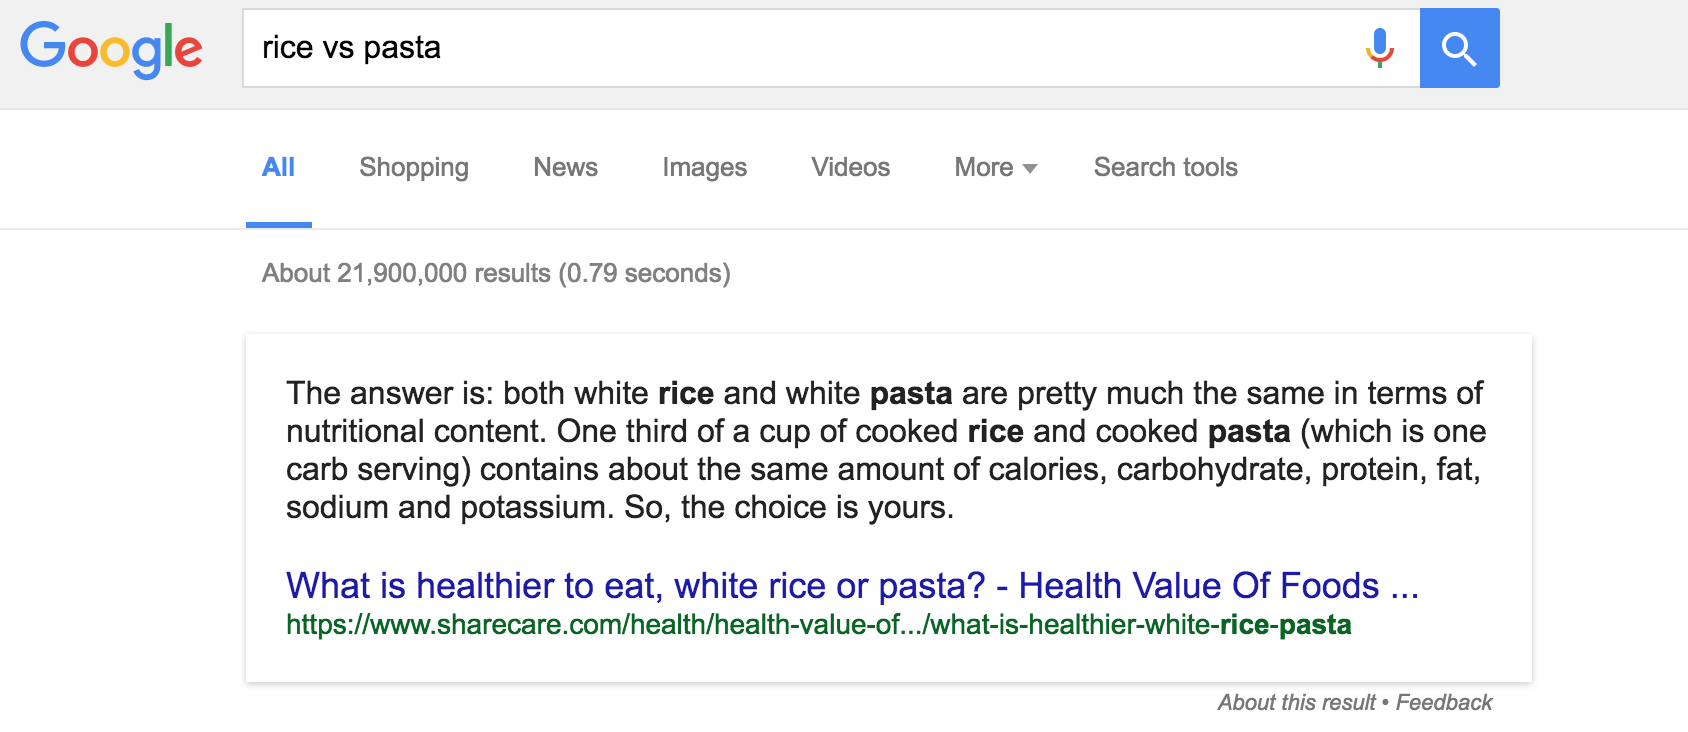 Image showing search comparison of rice and pasta